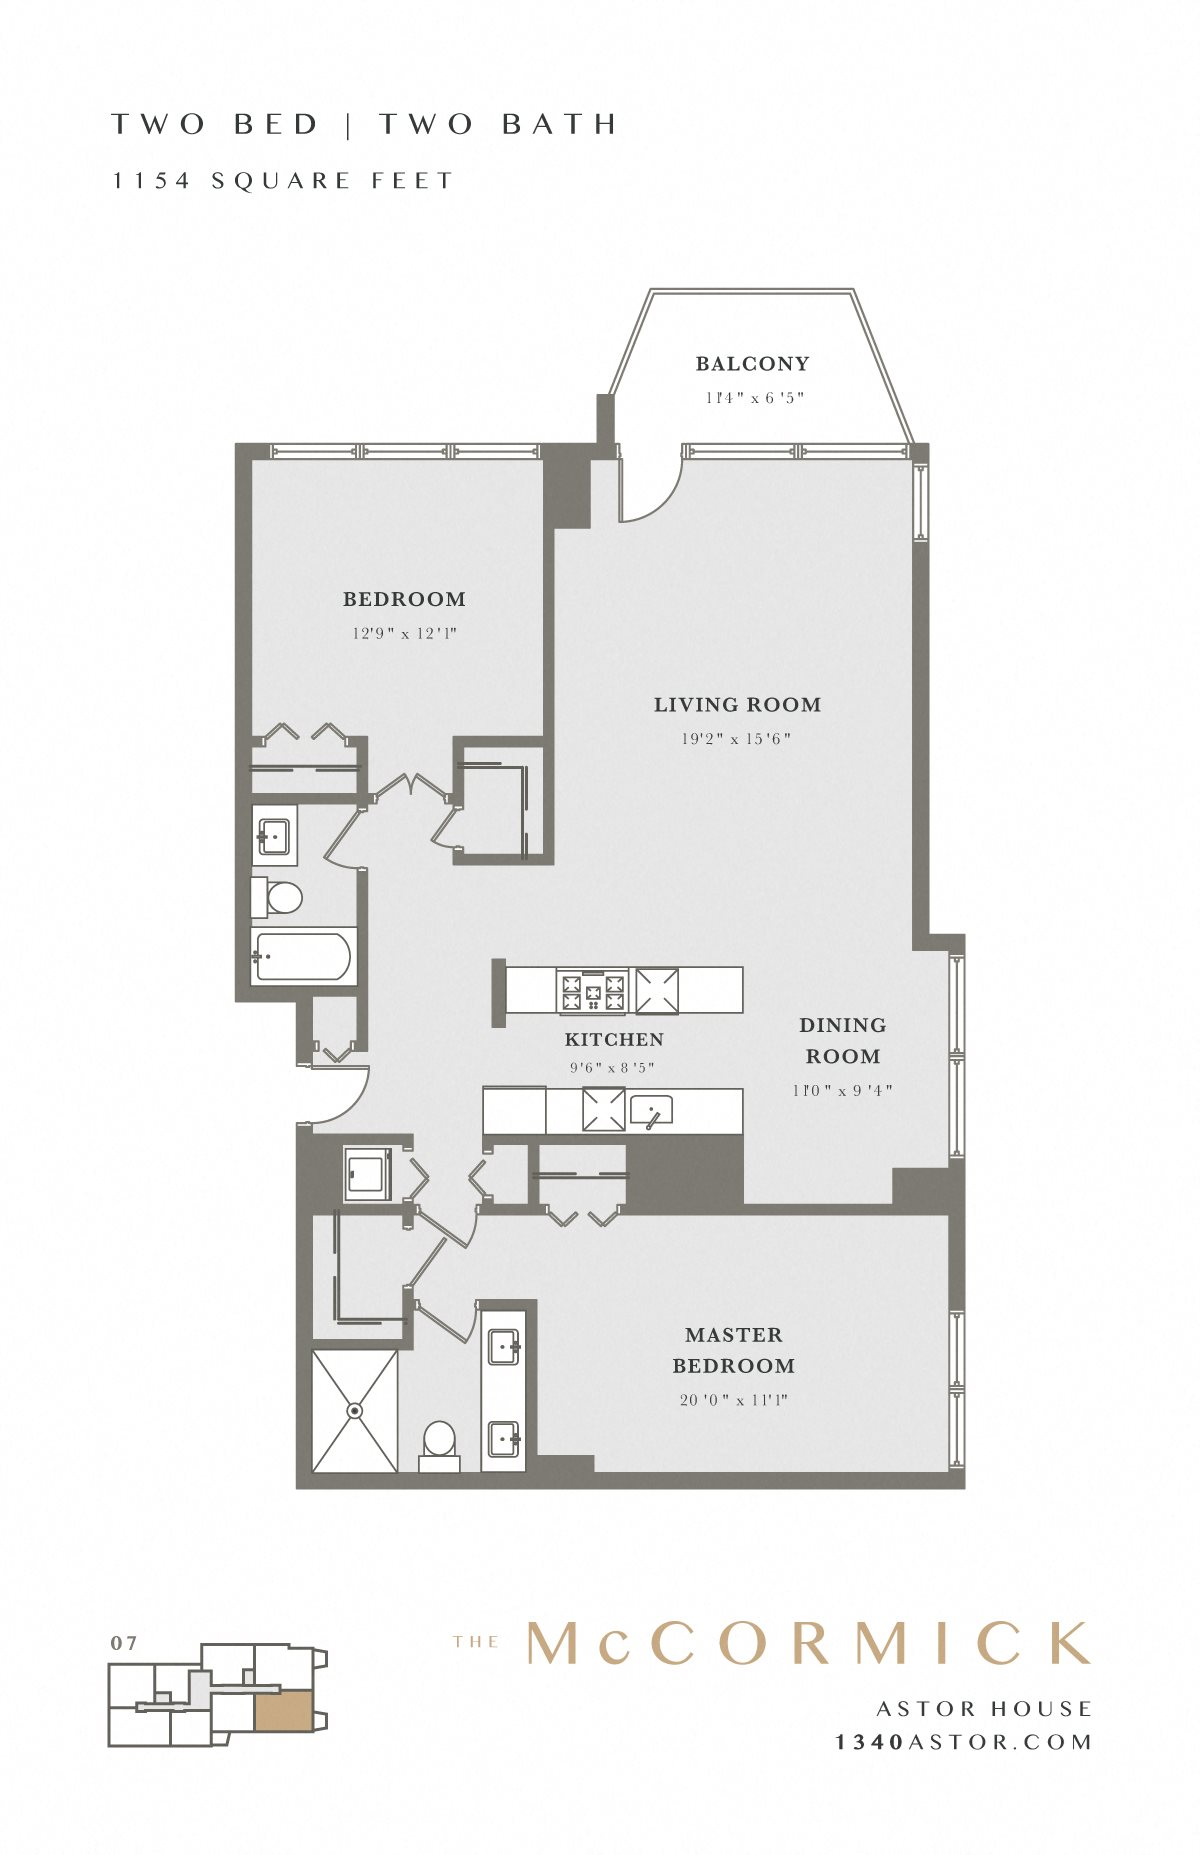 Astor House Floor Plan - McCormick